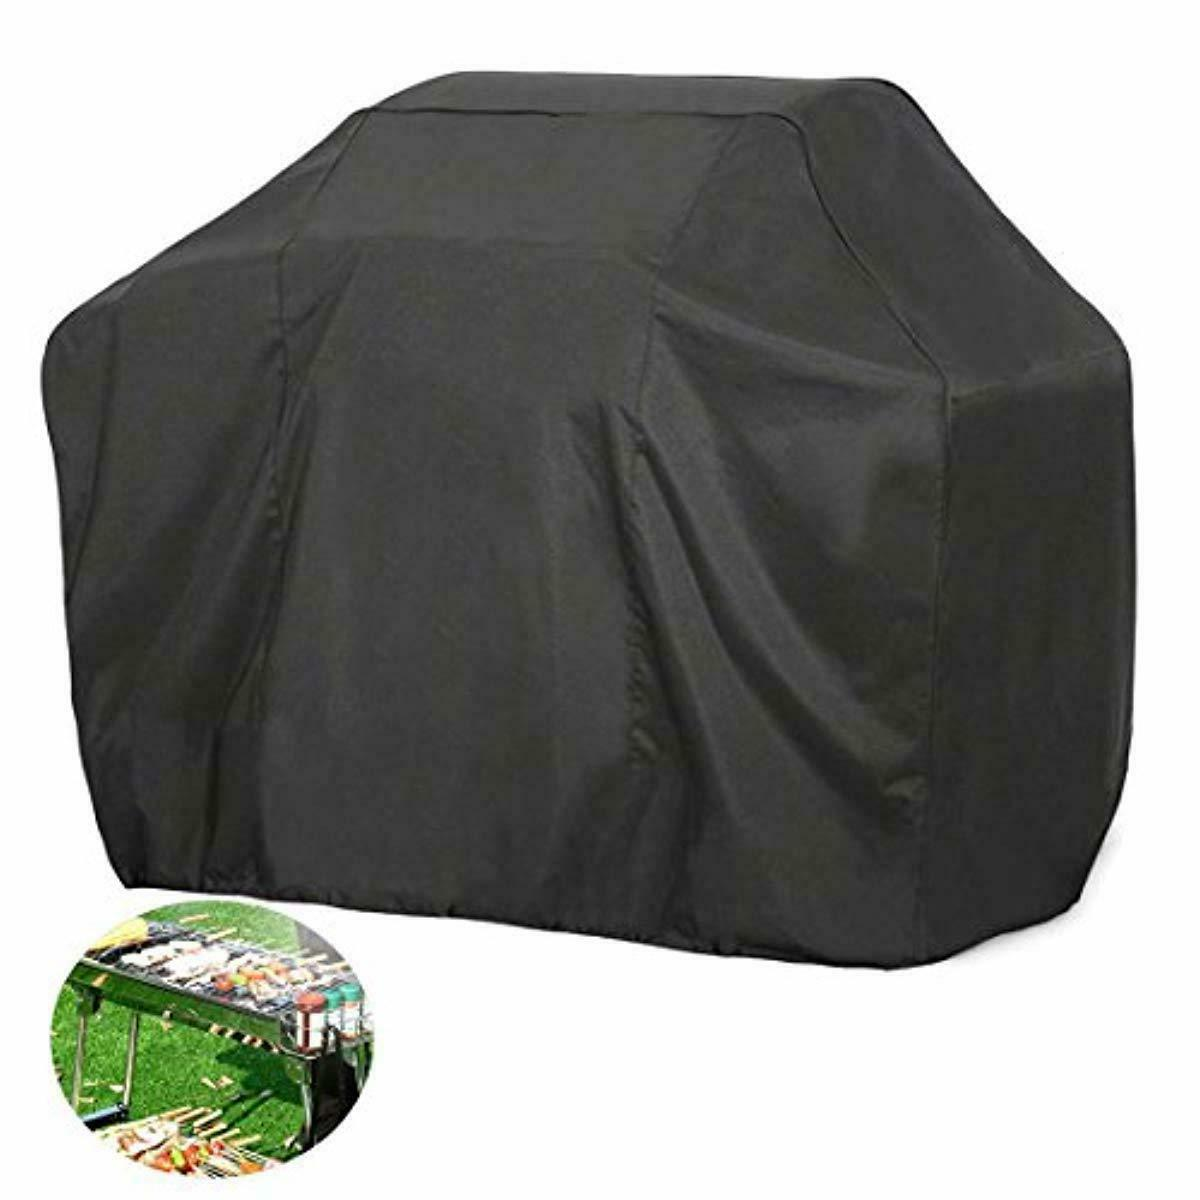 flr gas grill cover large xl 66